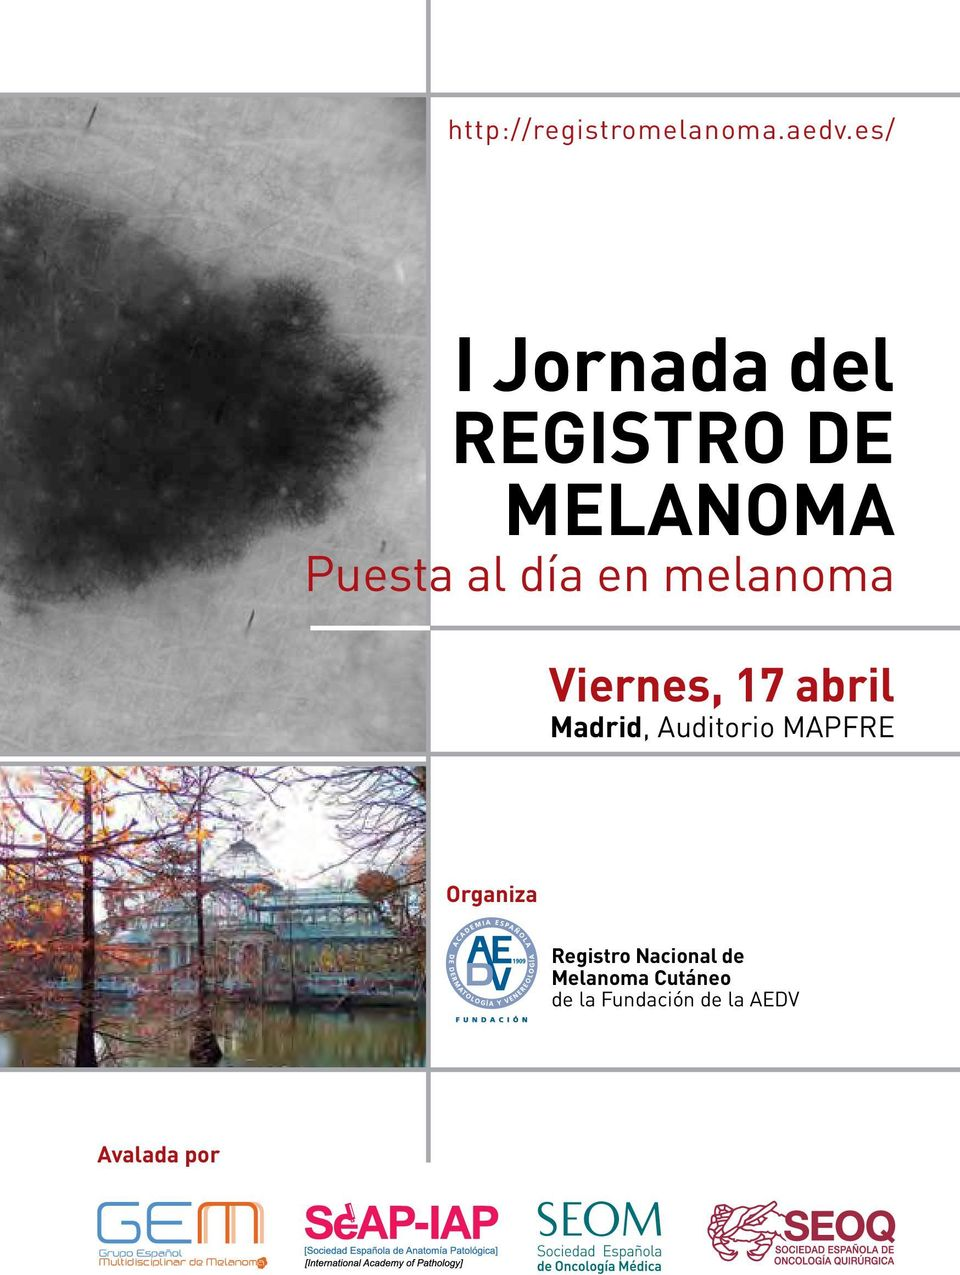 melanoma Viernes, 17 abril Madrid, Auditorio MAPFRE